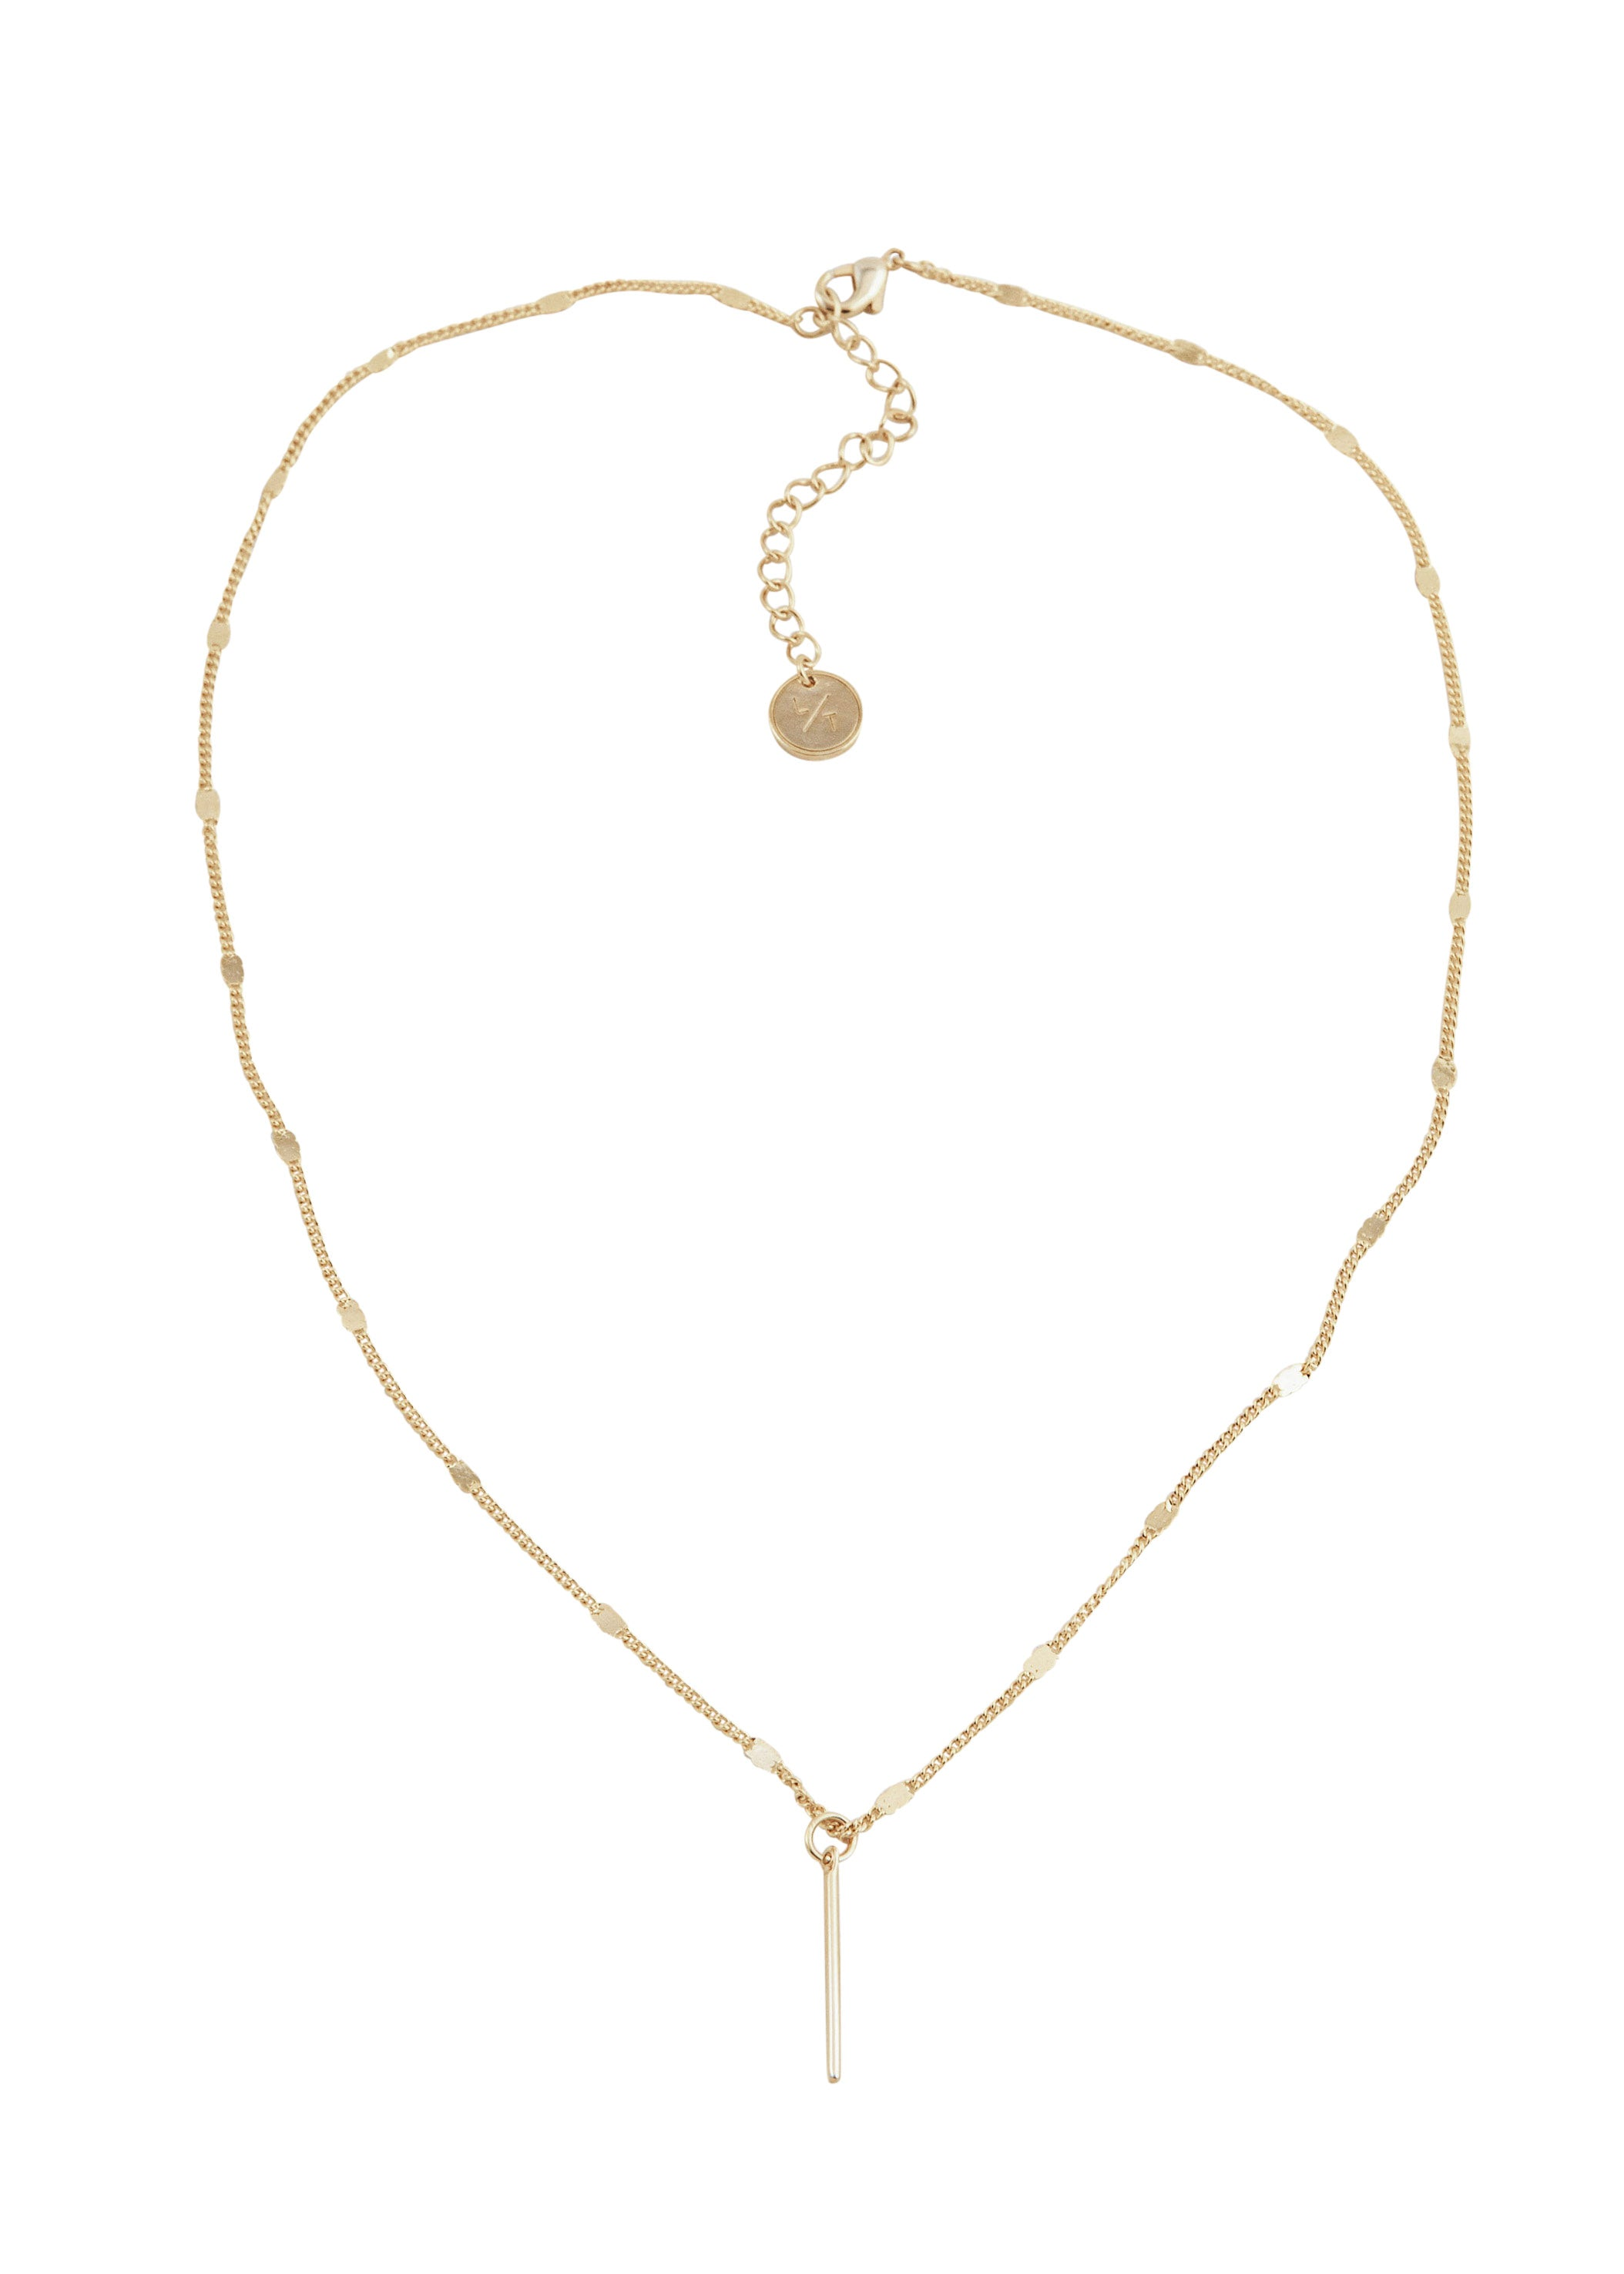 Lover's Tempo Everly Bar Necklace